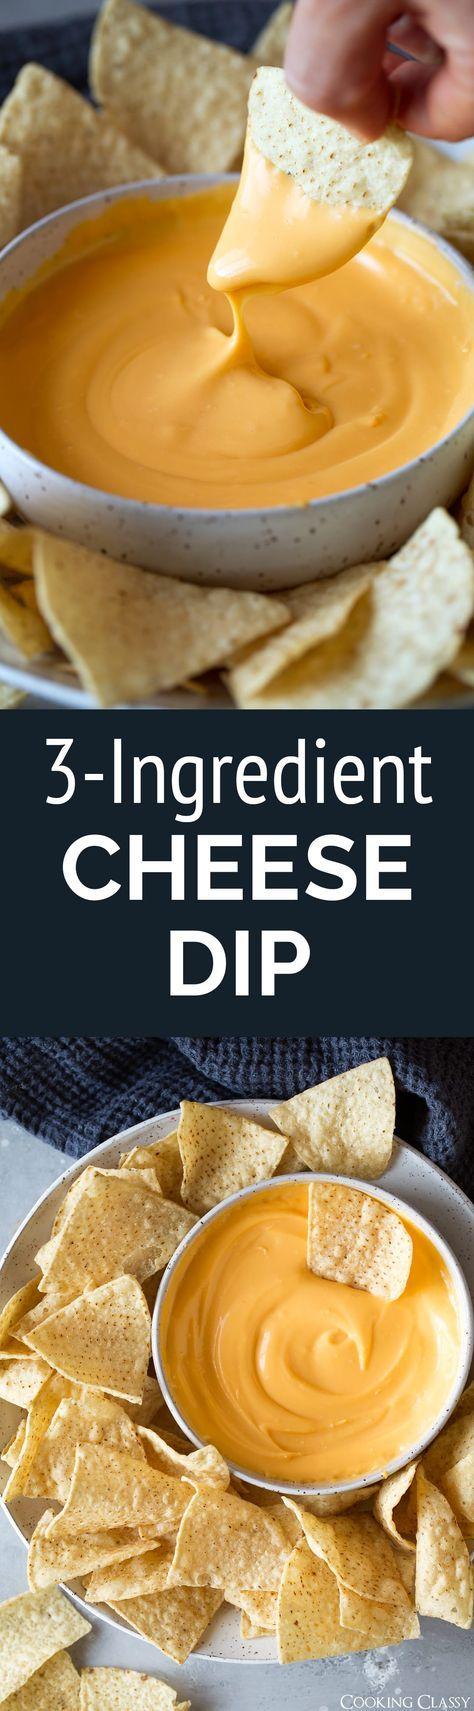 3 Ingredient Cheese Dip - A super easy, totally delicious cheddar cheese dip made with real ingredients! Perfect for parties or game day. #cheesedip #nachocheesedip #queso #easyrecipe via @cookingclassy